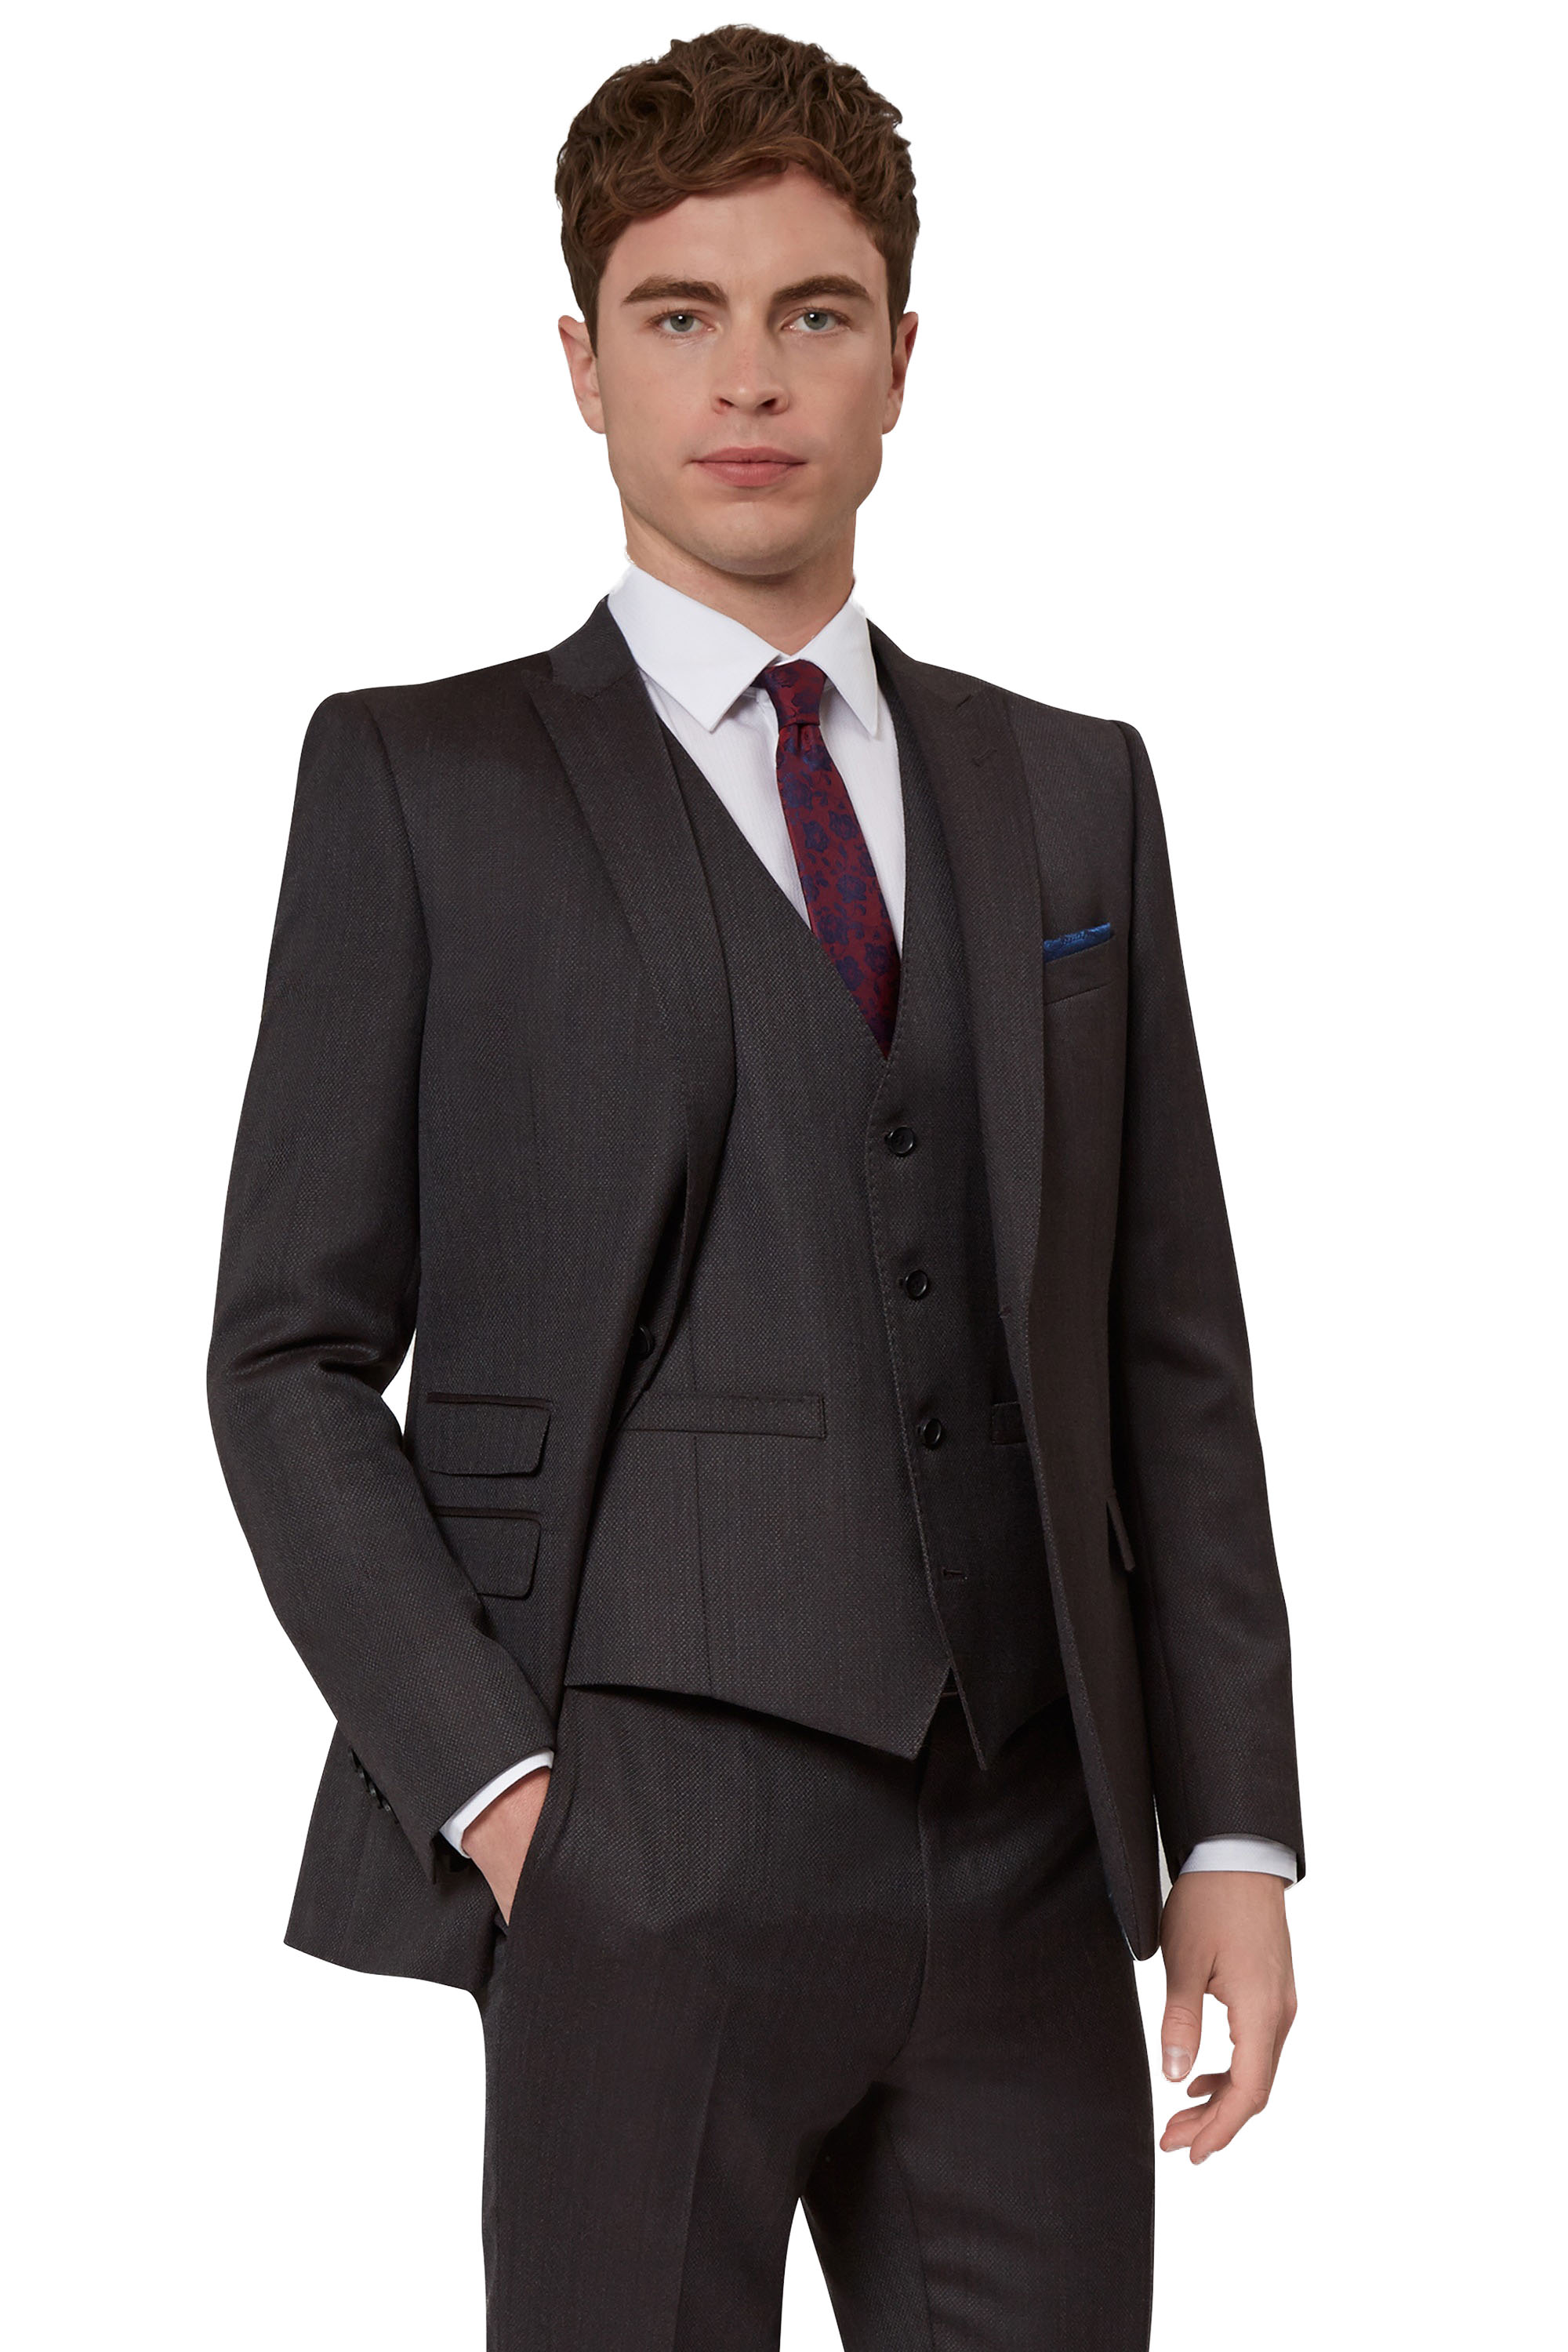 French Connection Mens Brown Suit Jacket Slim Fit Textured Two ...